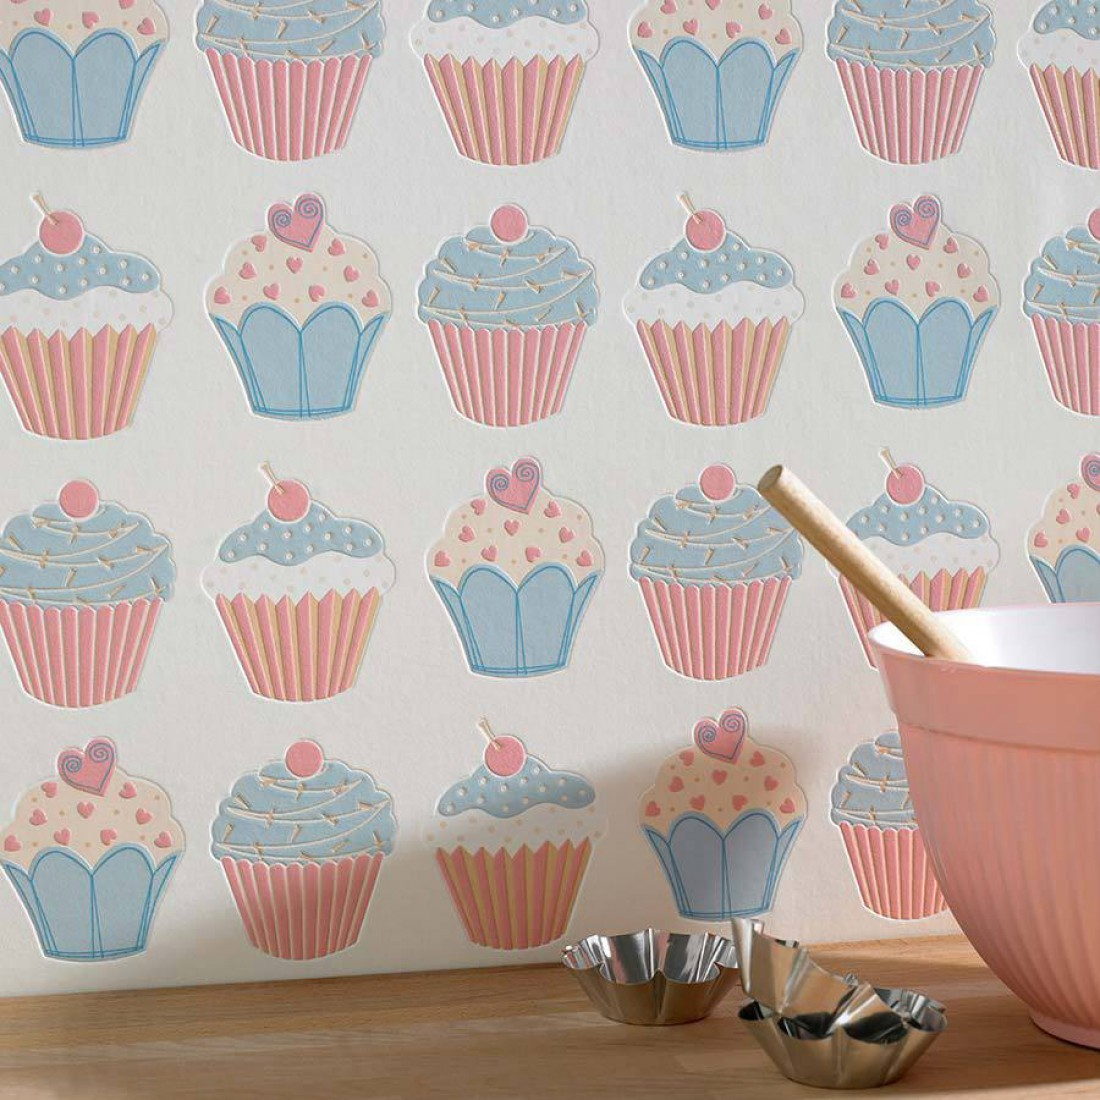 Cupcake-Romantic-patterns-from-the-s-wallpaper-wp5404308